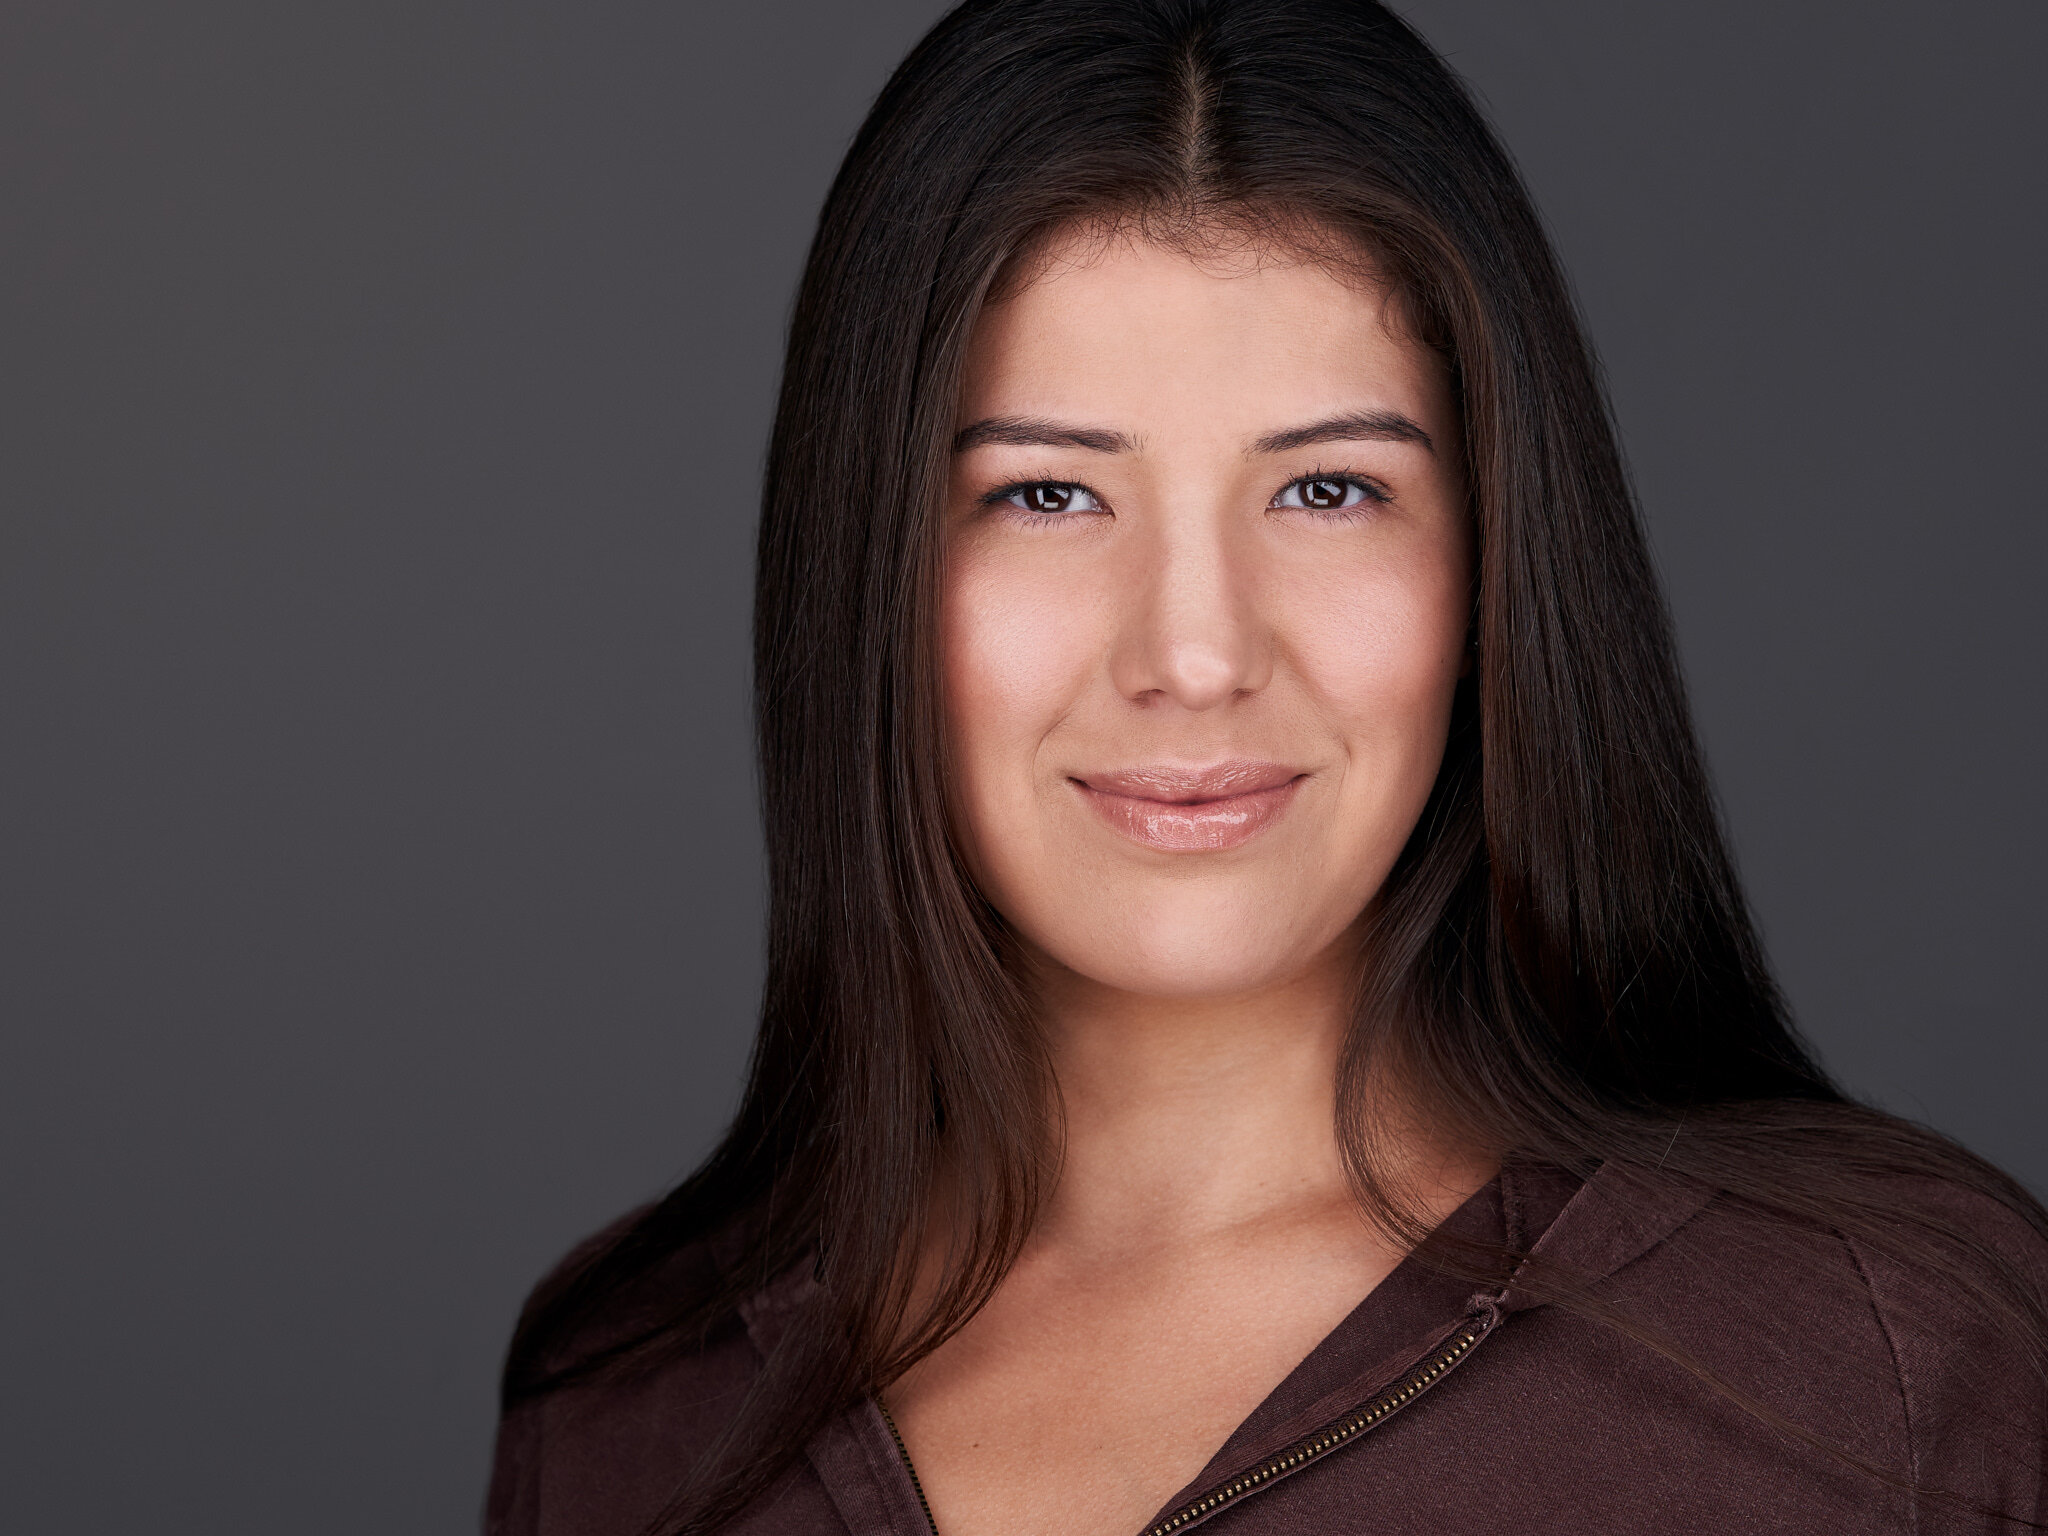 What makes a standout headshot: - A genuine expression where you look relaxed, confident and approachable.